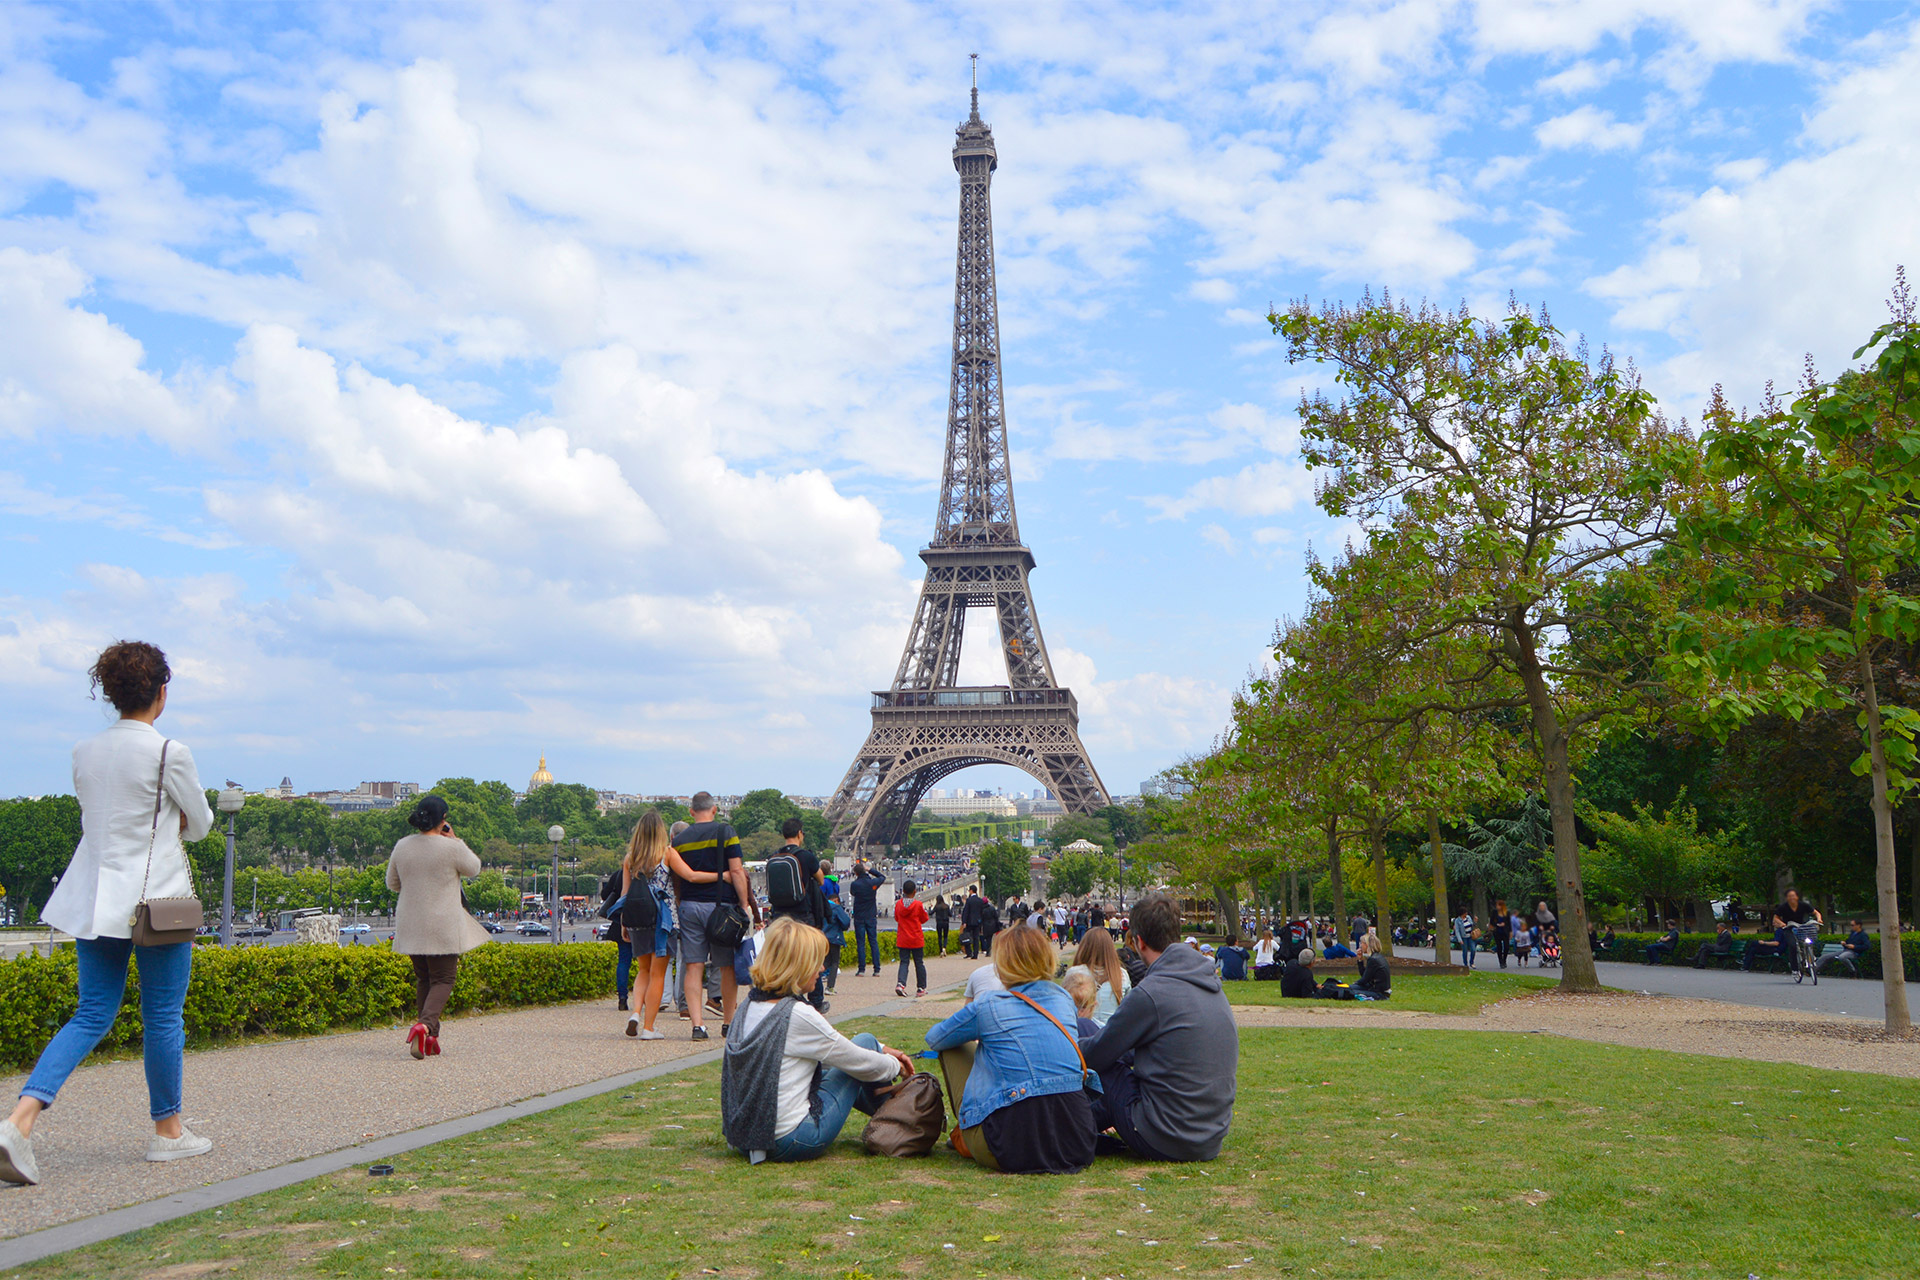 People sitting in Champ de Mars park watching the Eiffel Tower